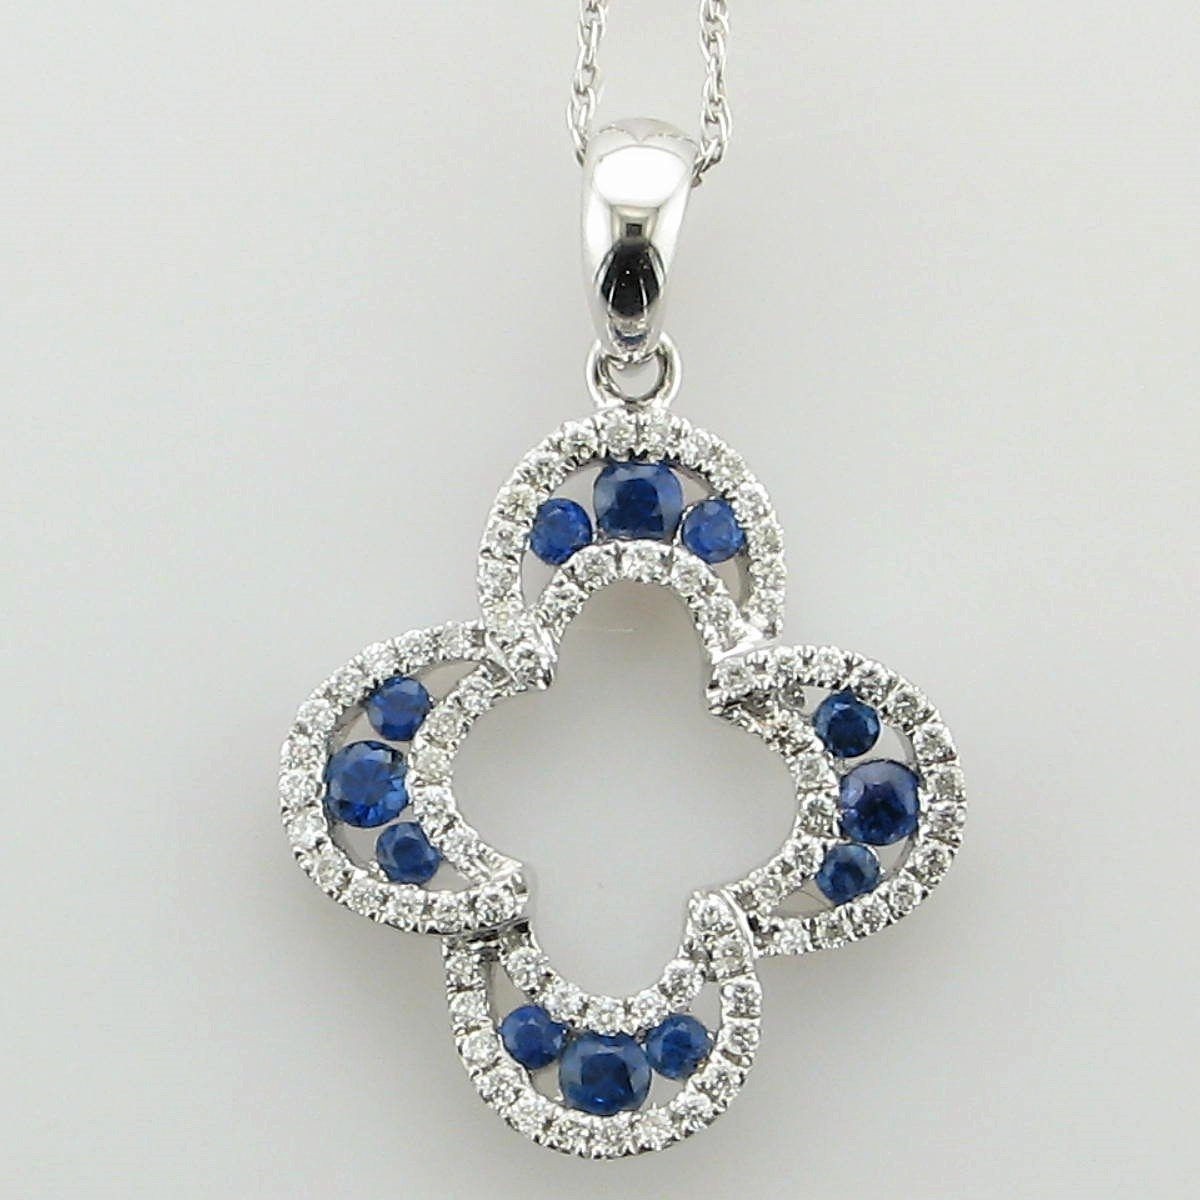 18K White Gold Open Sapphire and Diamond Crescent Halos Necklace